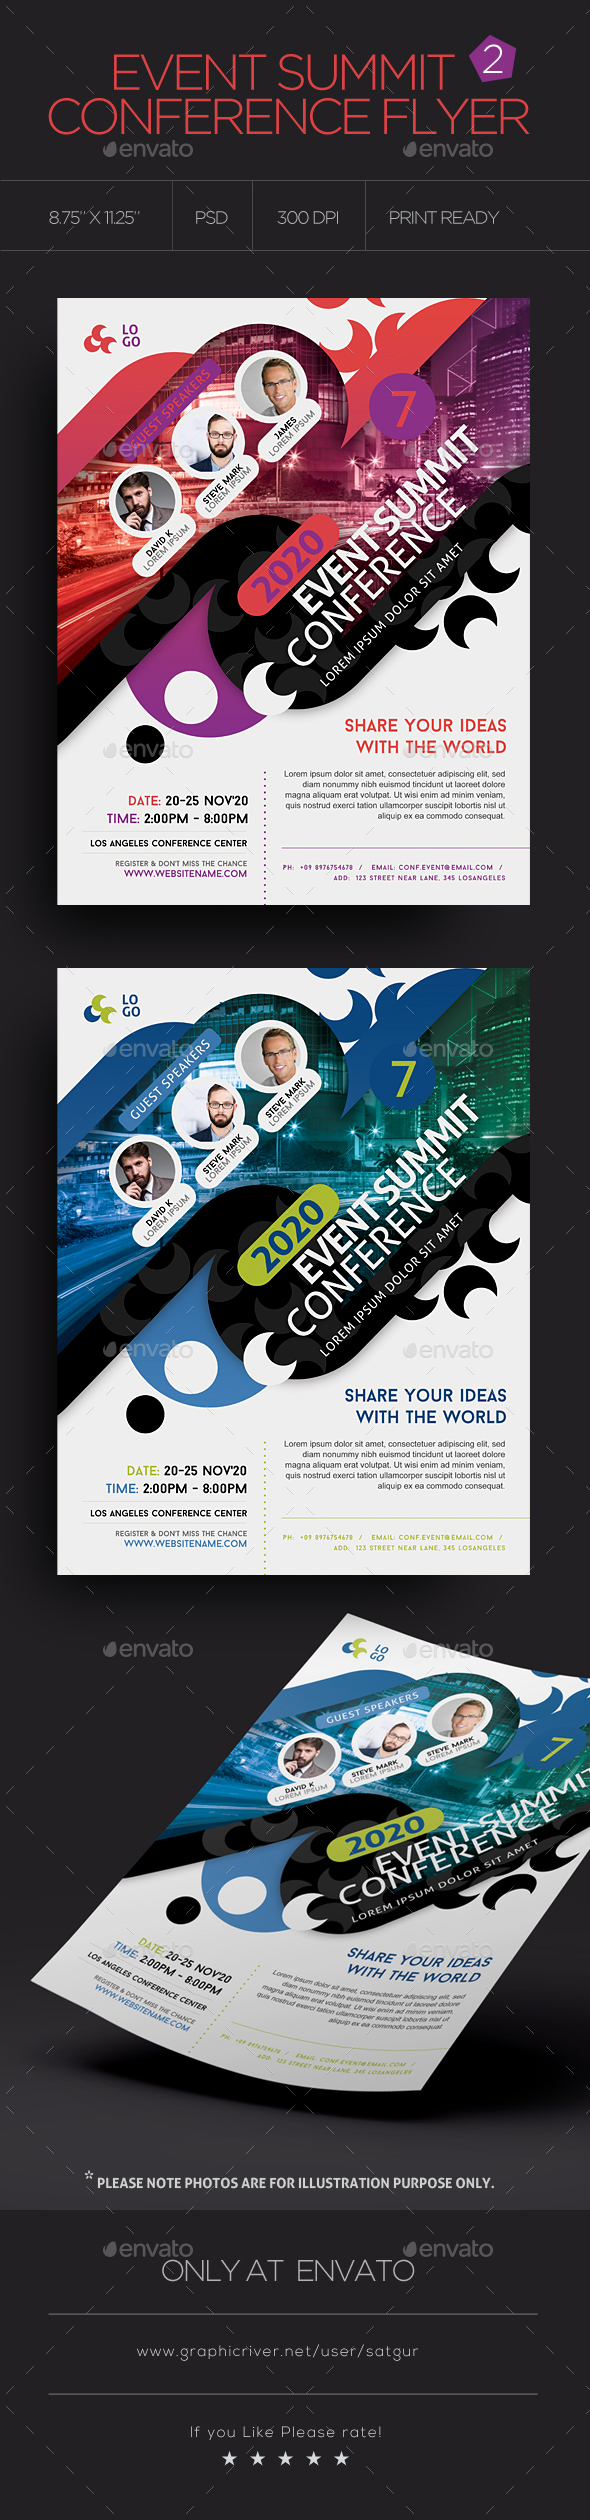 Event Summit Conference Flyer V2 - Corporate Flyers